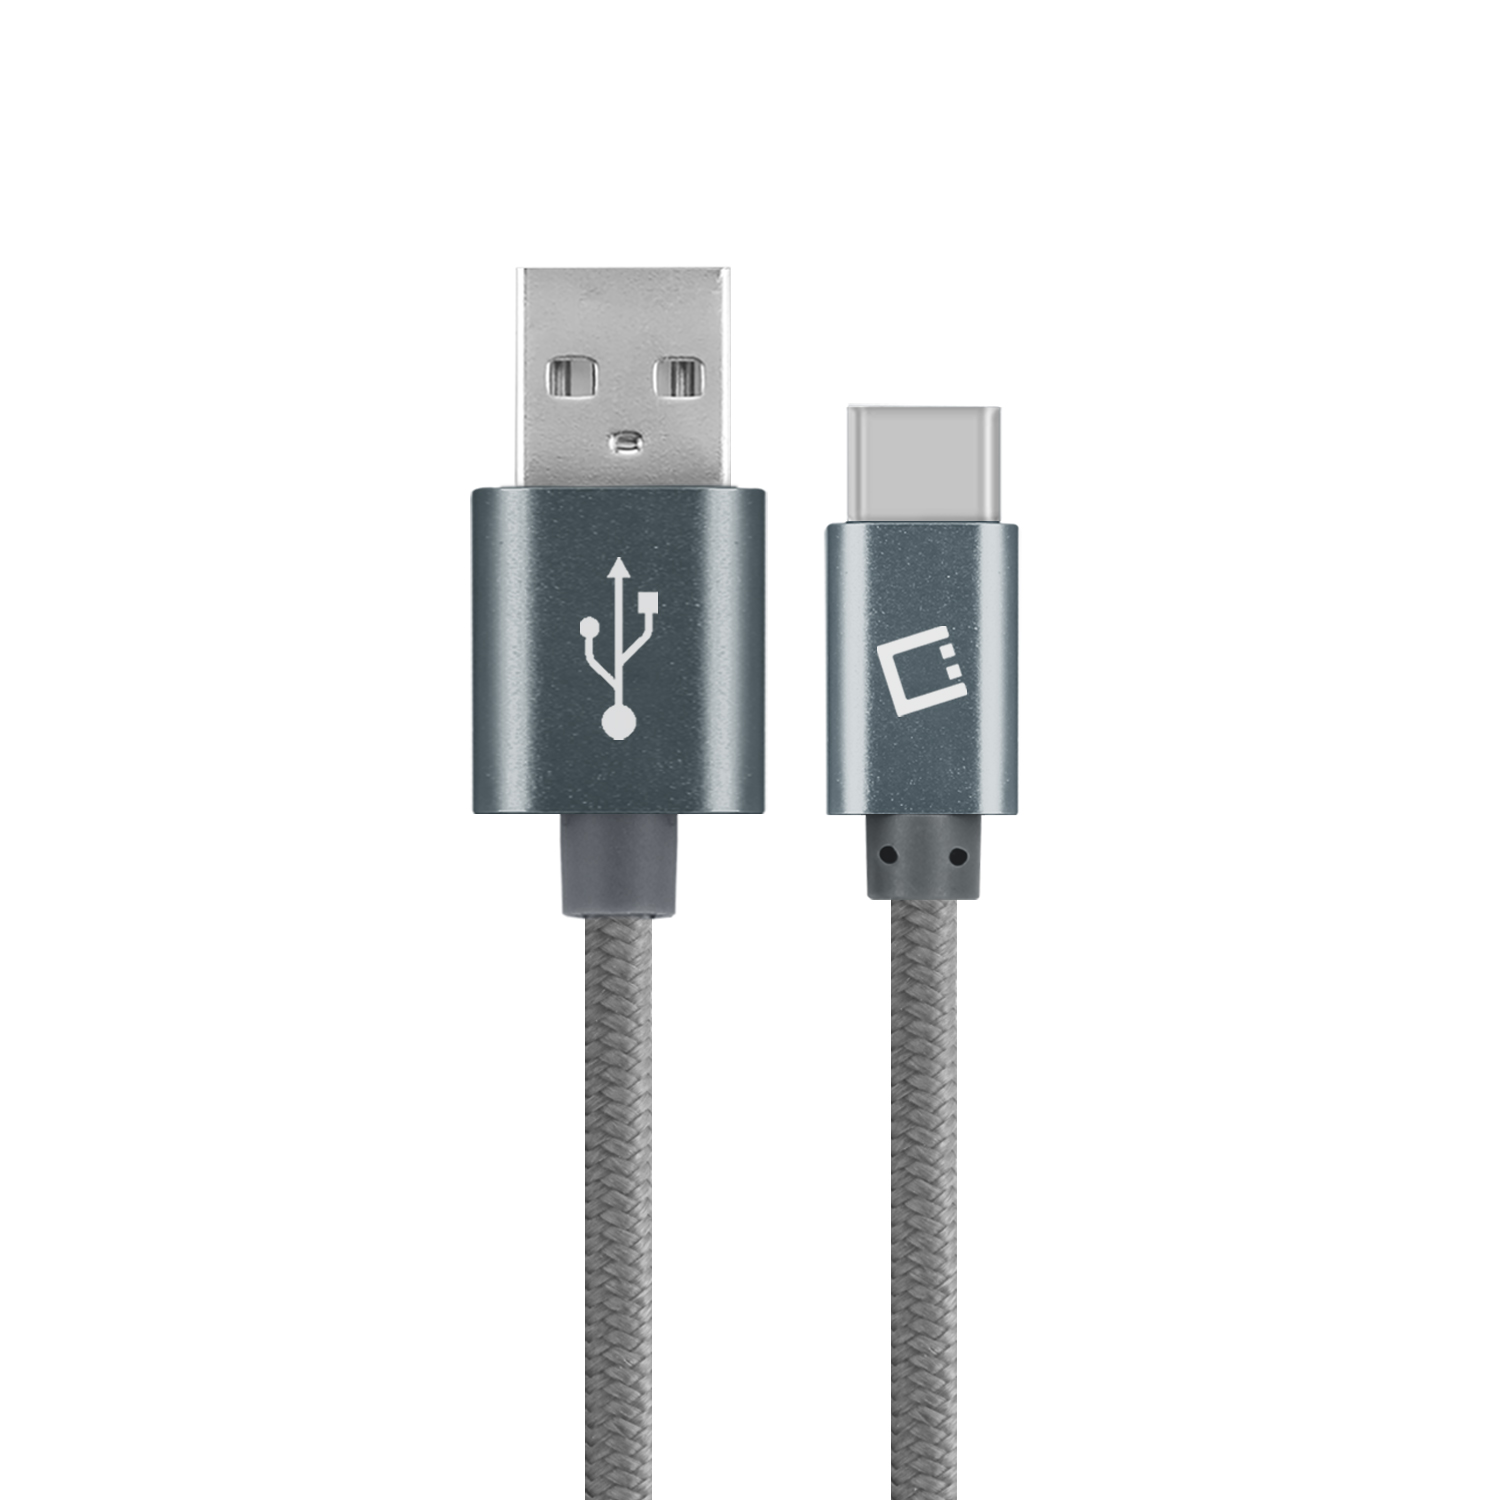 Samsung Galaxy A51 LTE USB Type-C To Type-A Braided Data Power Cable Grey 6ft Braided